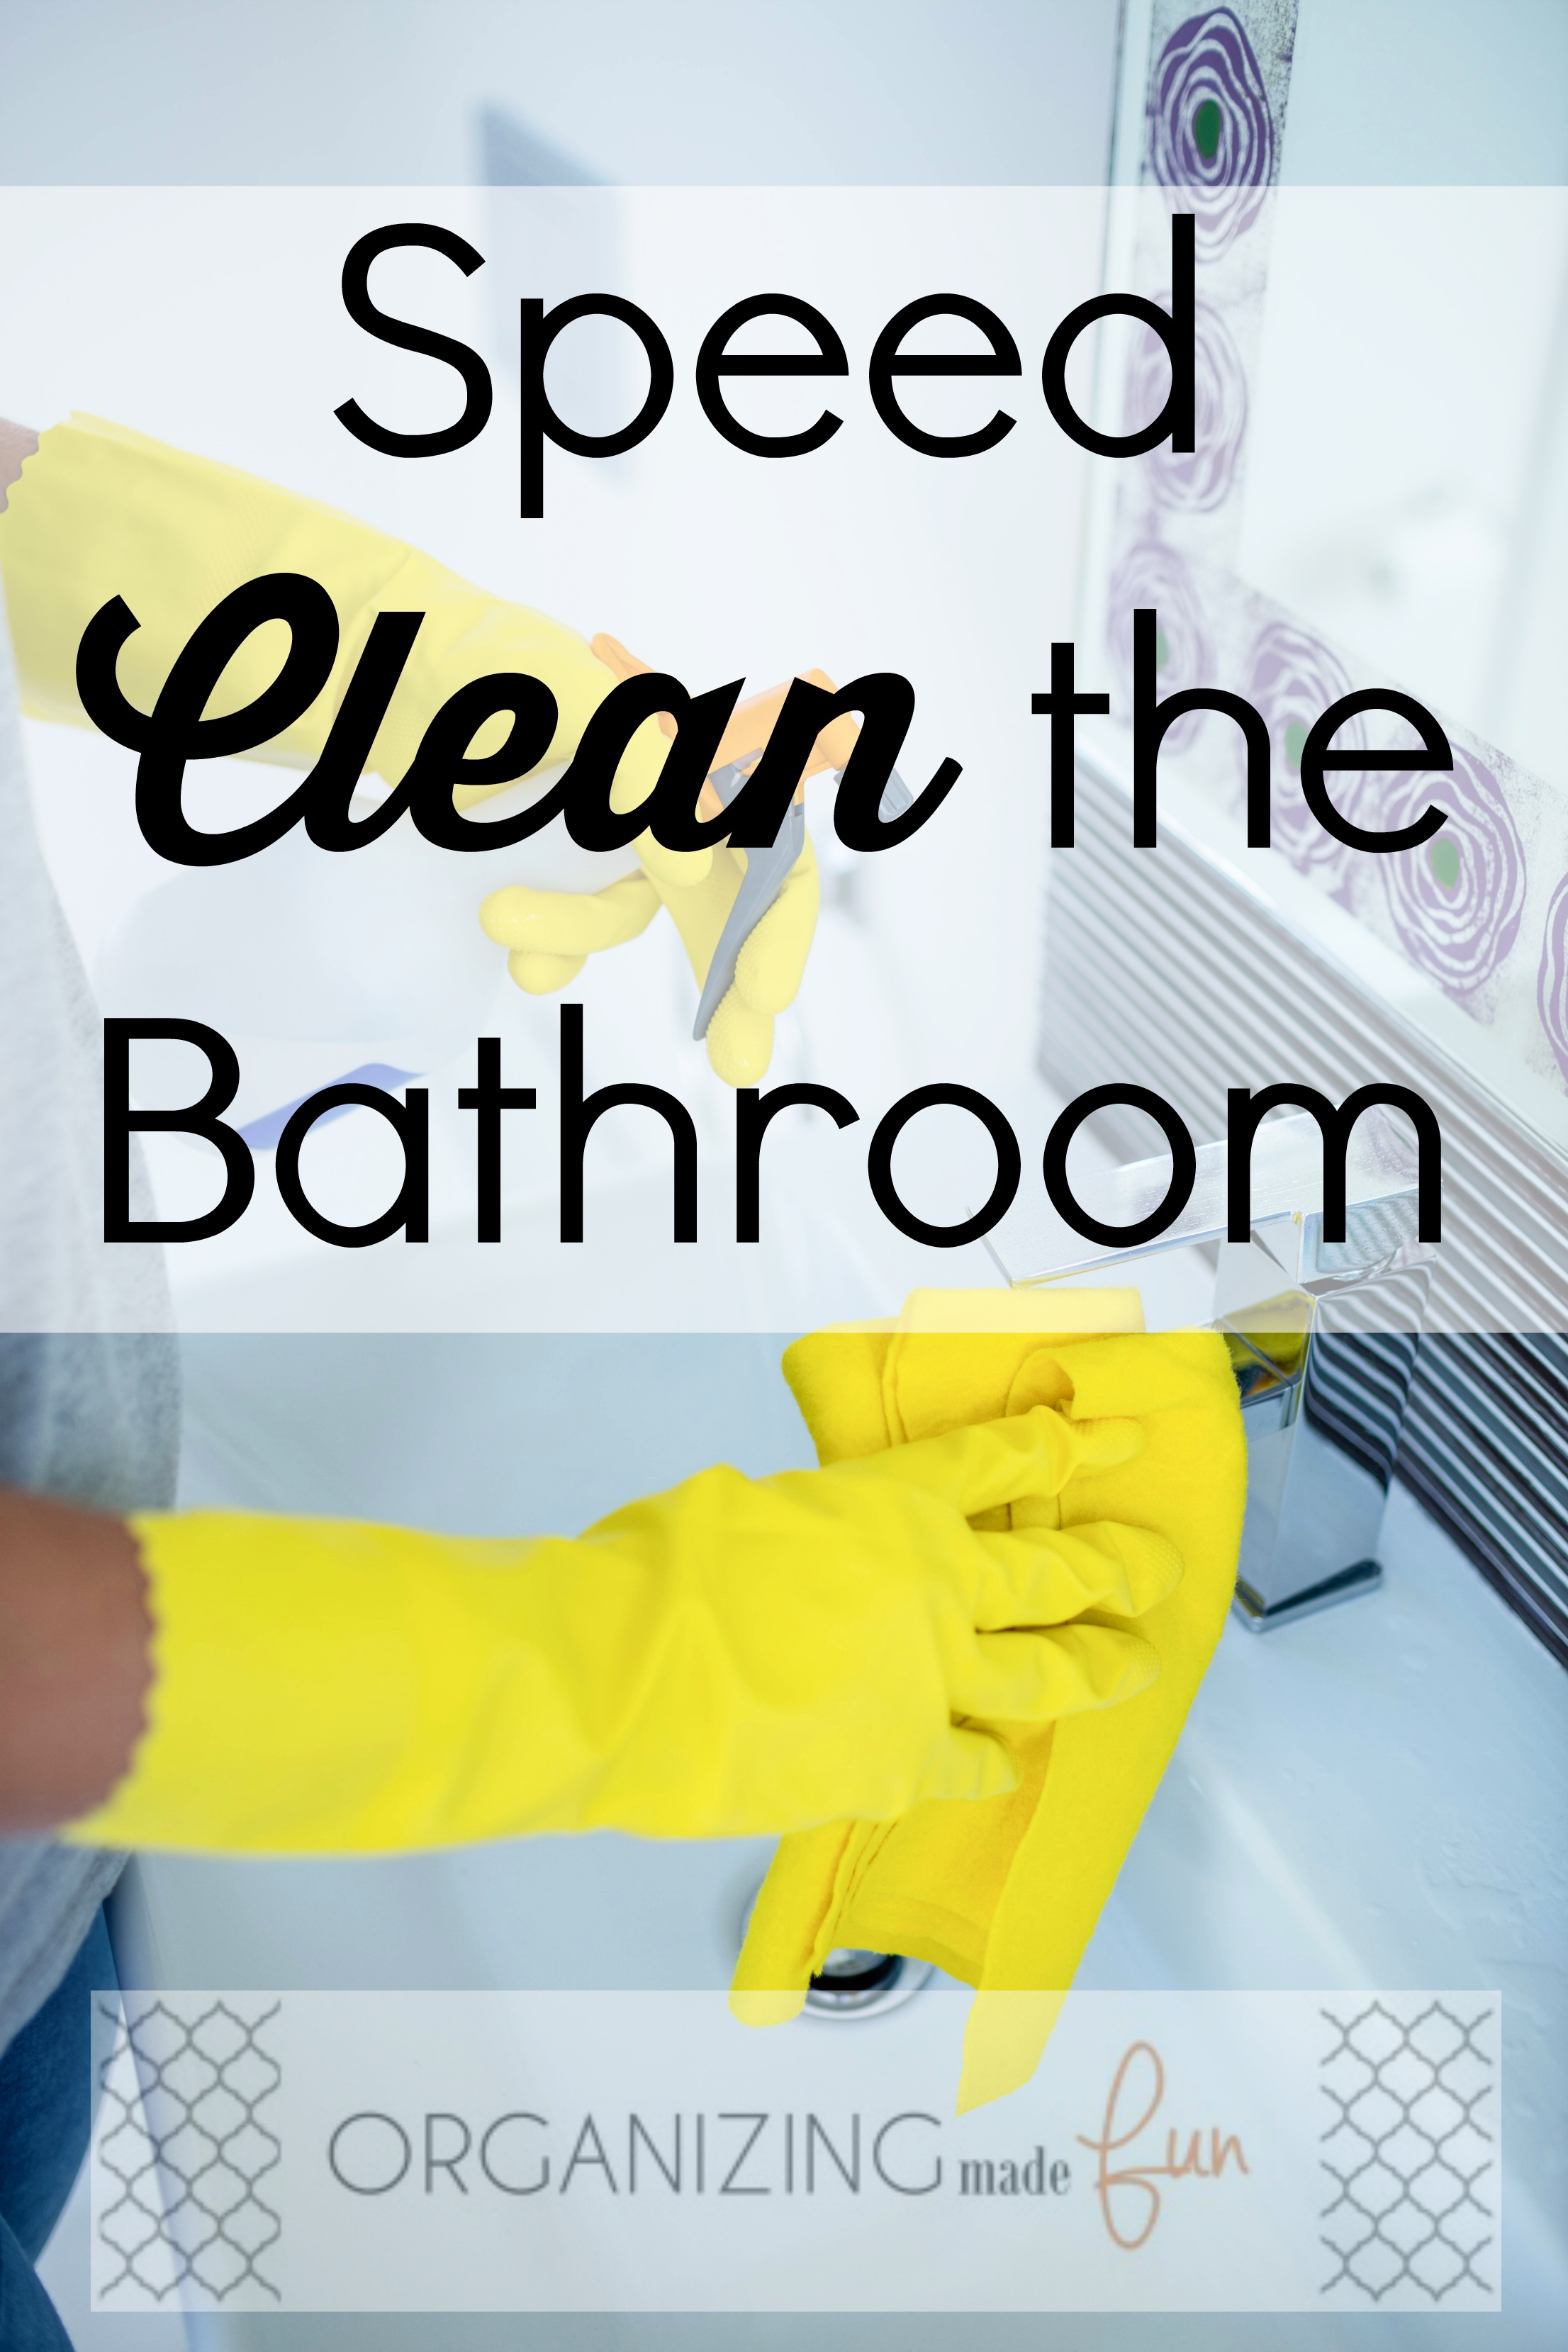 How to speed clean the bathroom